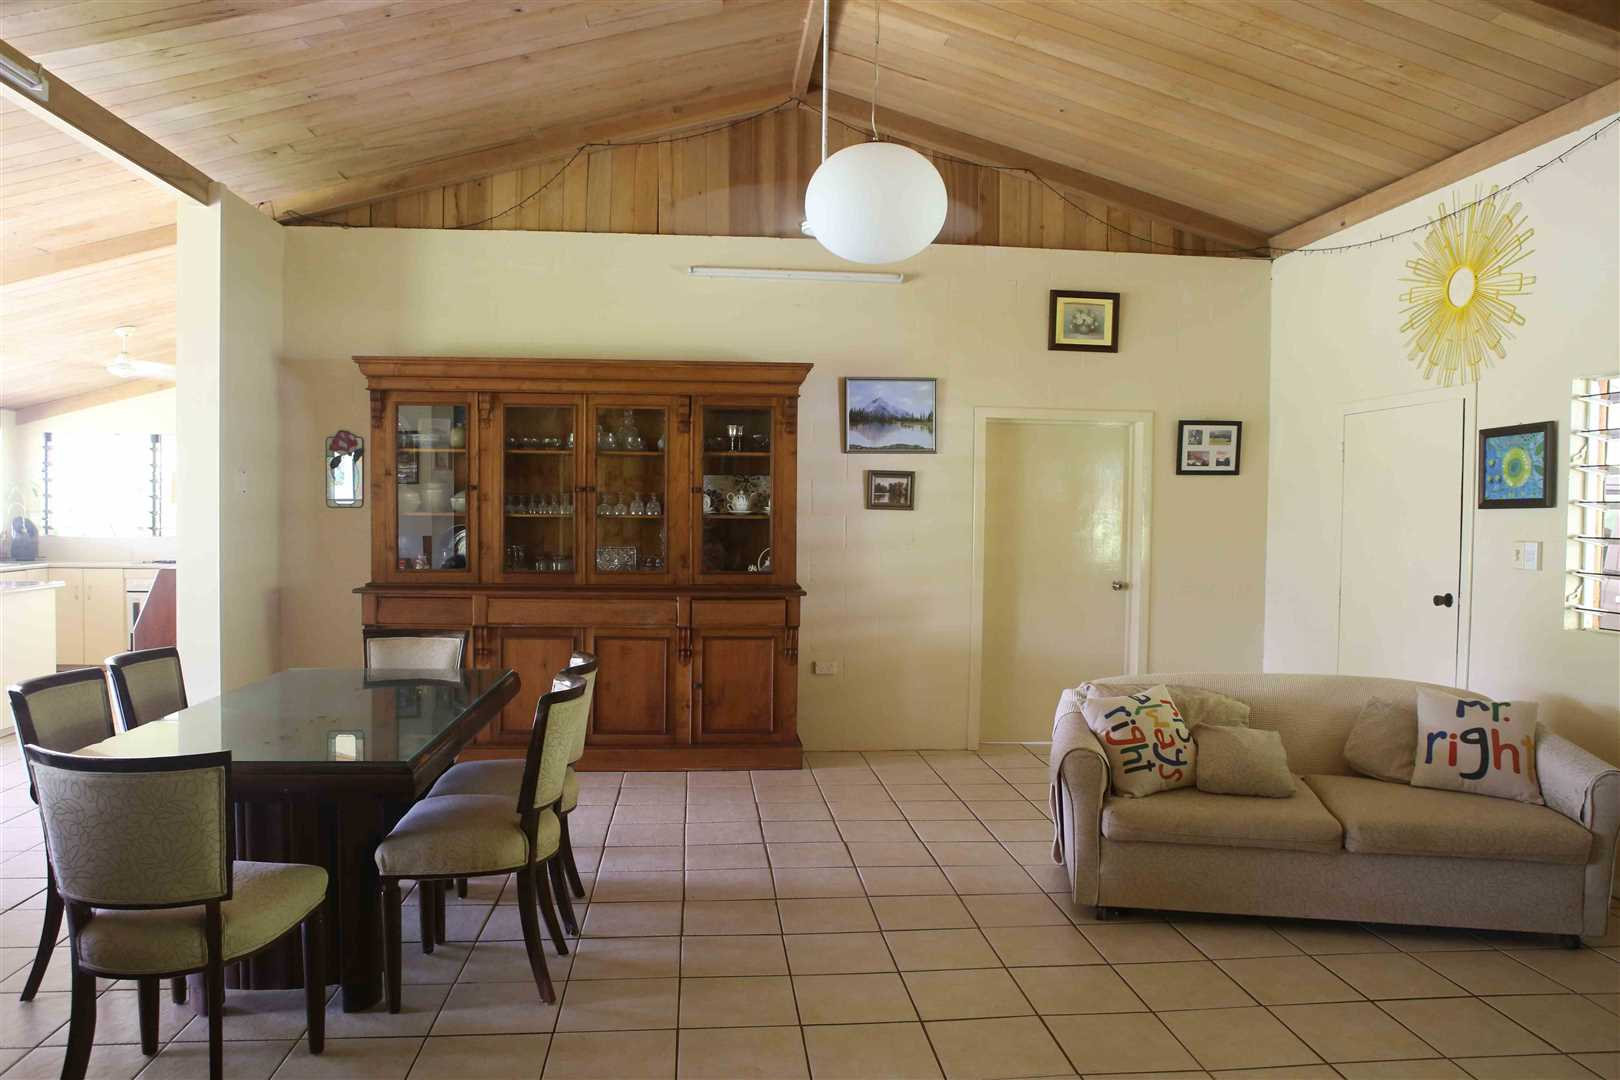 Inside view of part of home showing part of the open plan living and dining areas, photo 2